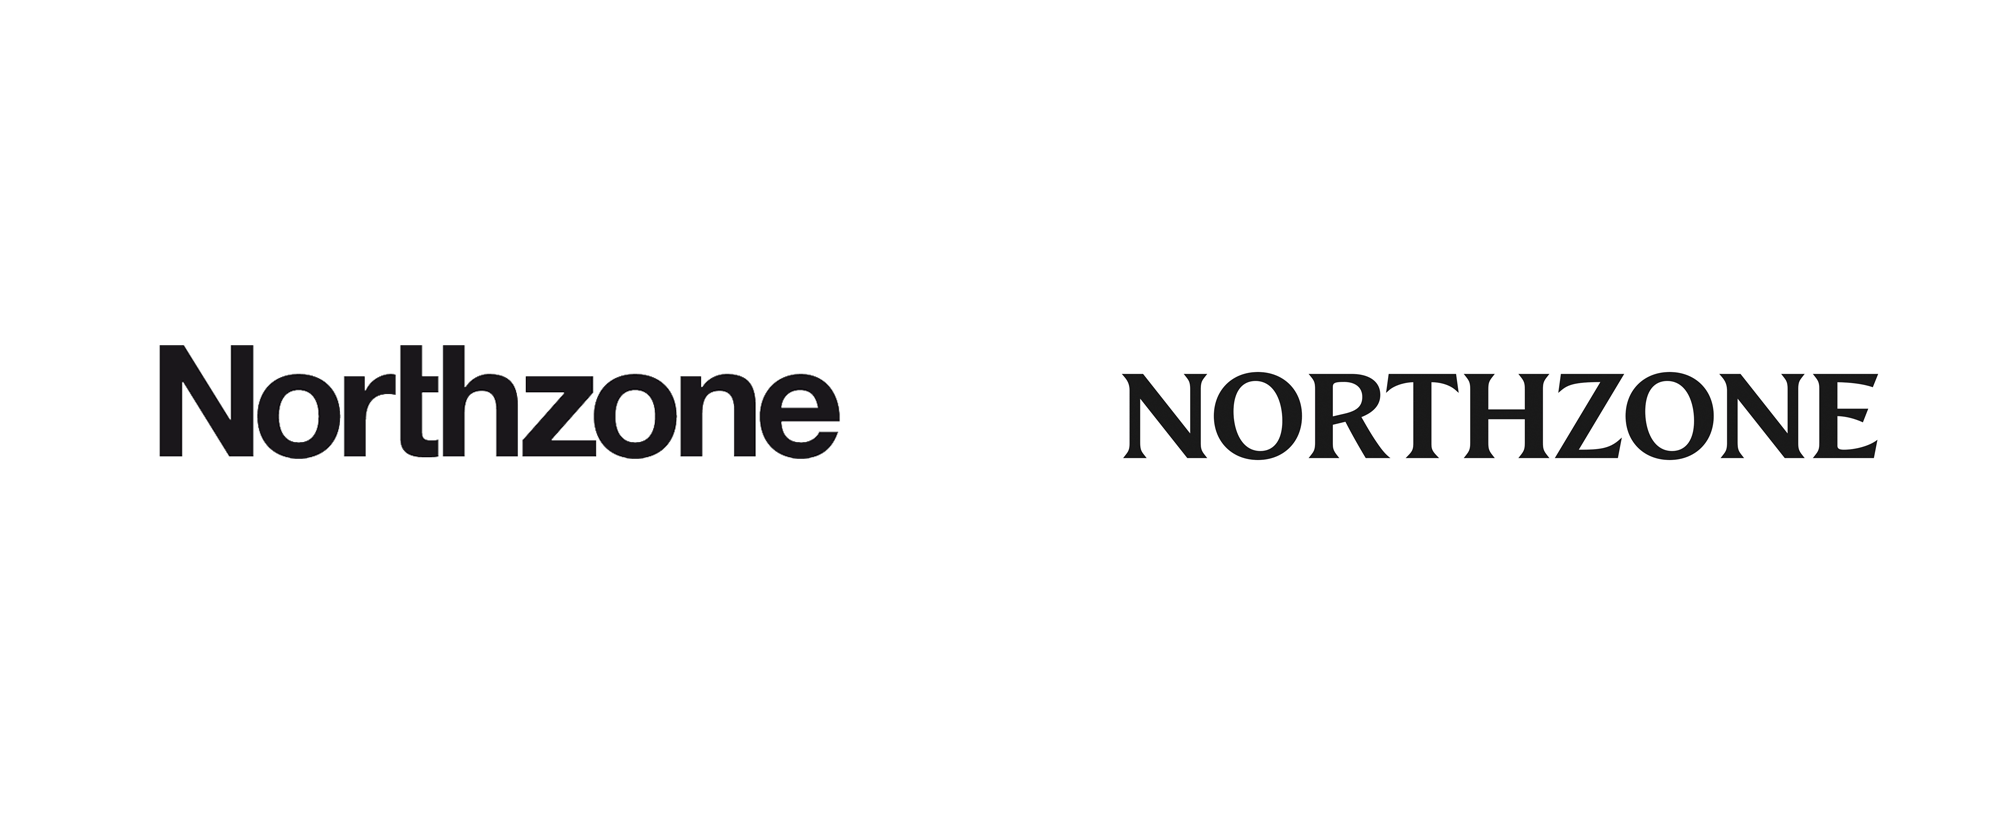 New Logo and Identity for Northzone by Ragged Edge